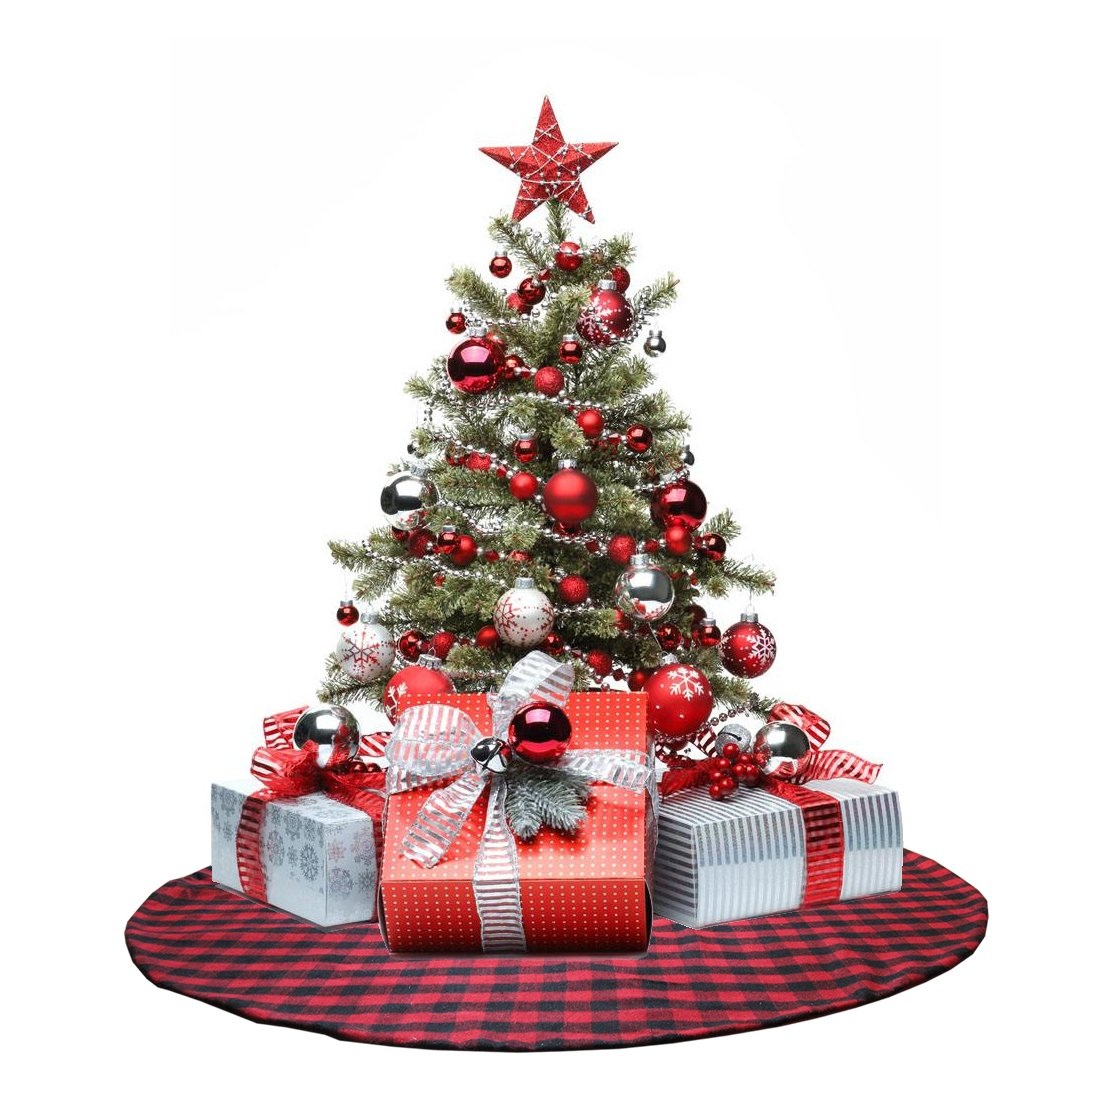 EDLDECCO 48 Inch Christmas Tree Skirt With Red